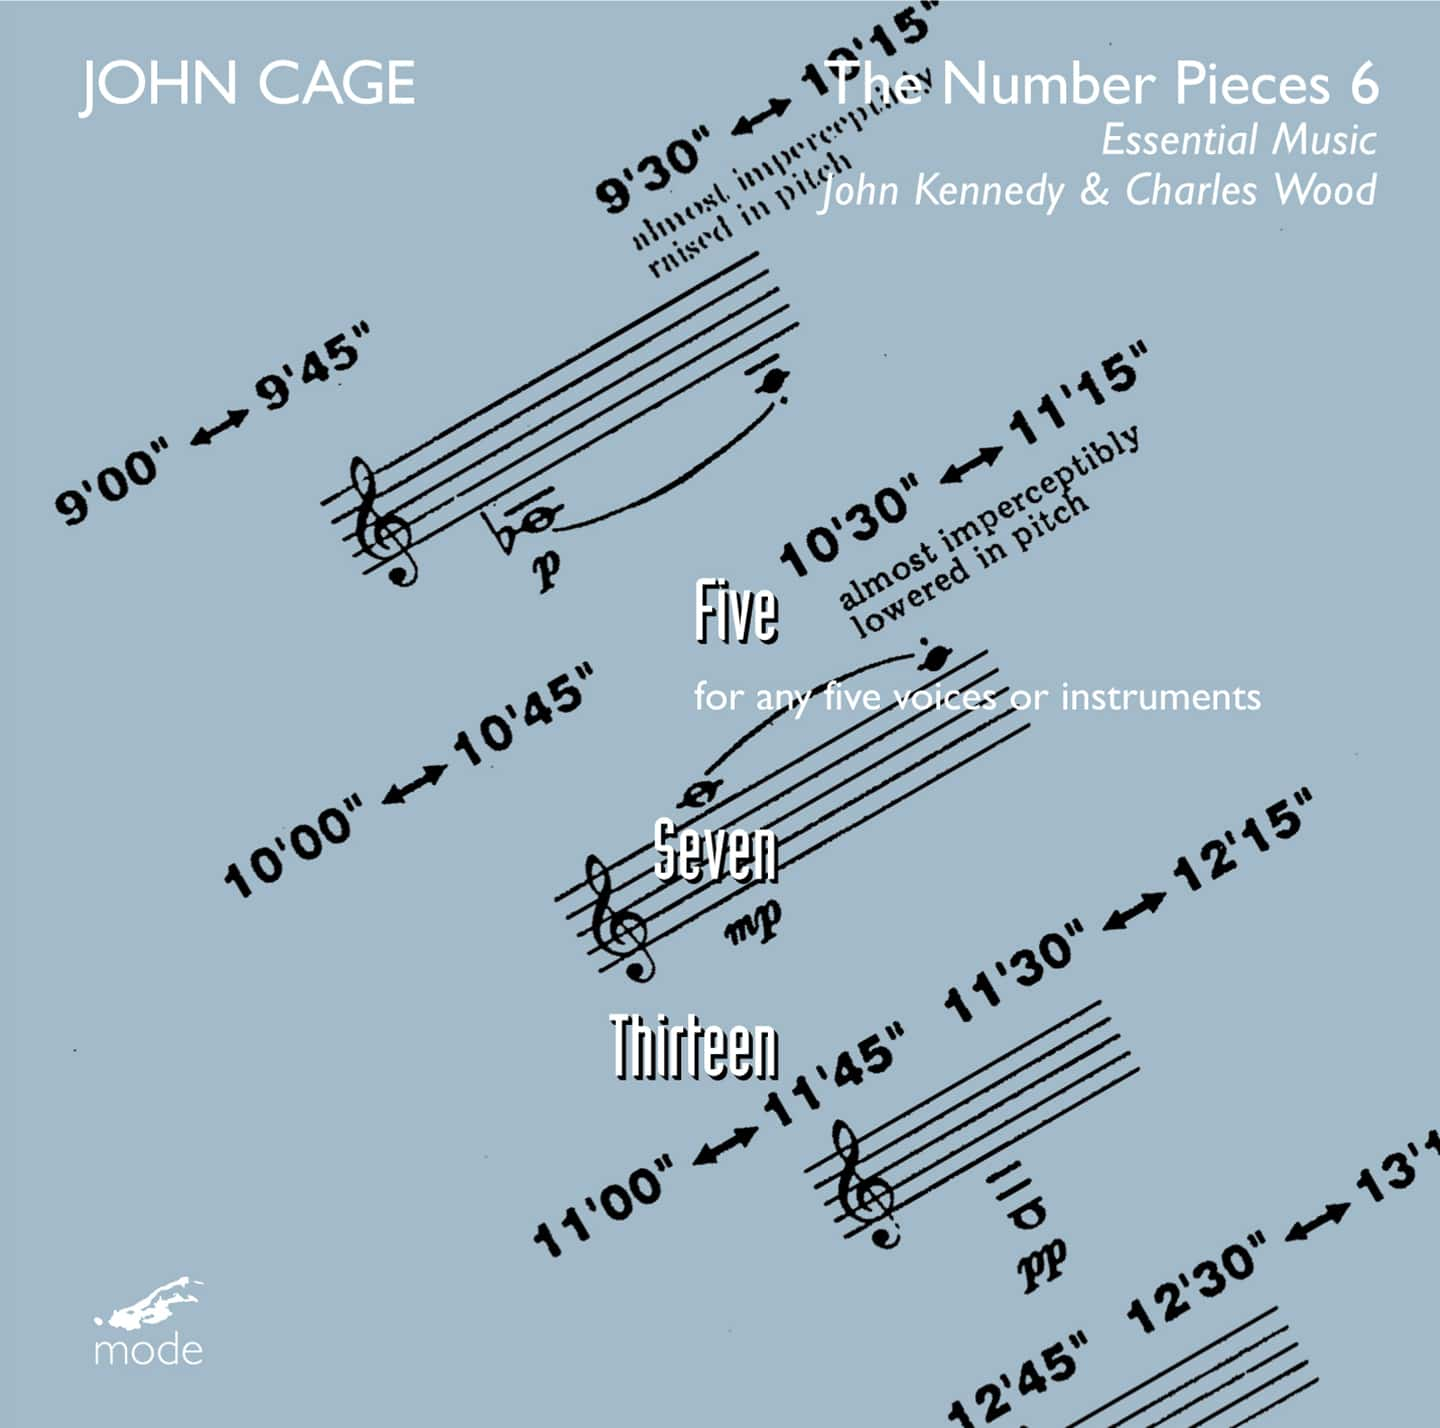 Cage Edition 44-The Number Pieces 6